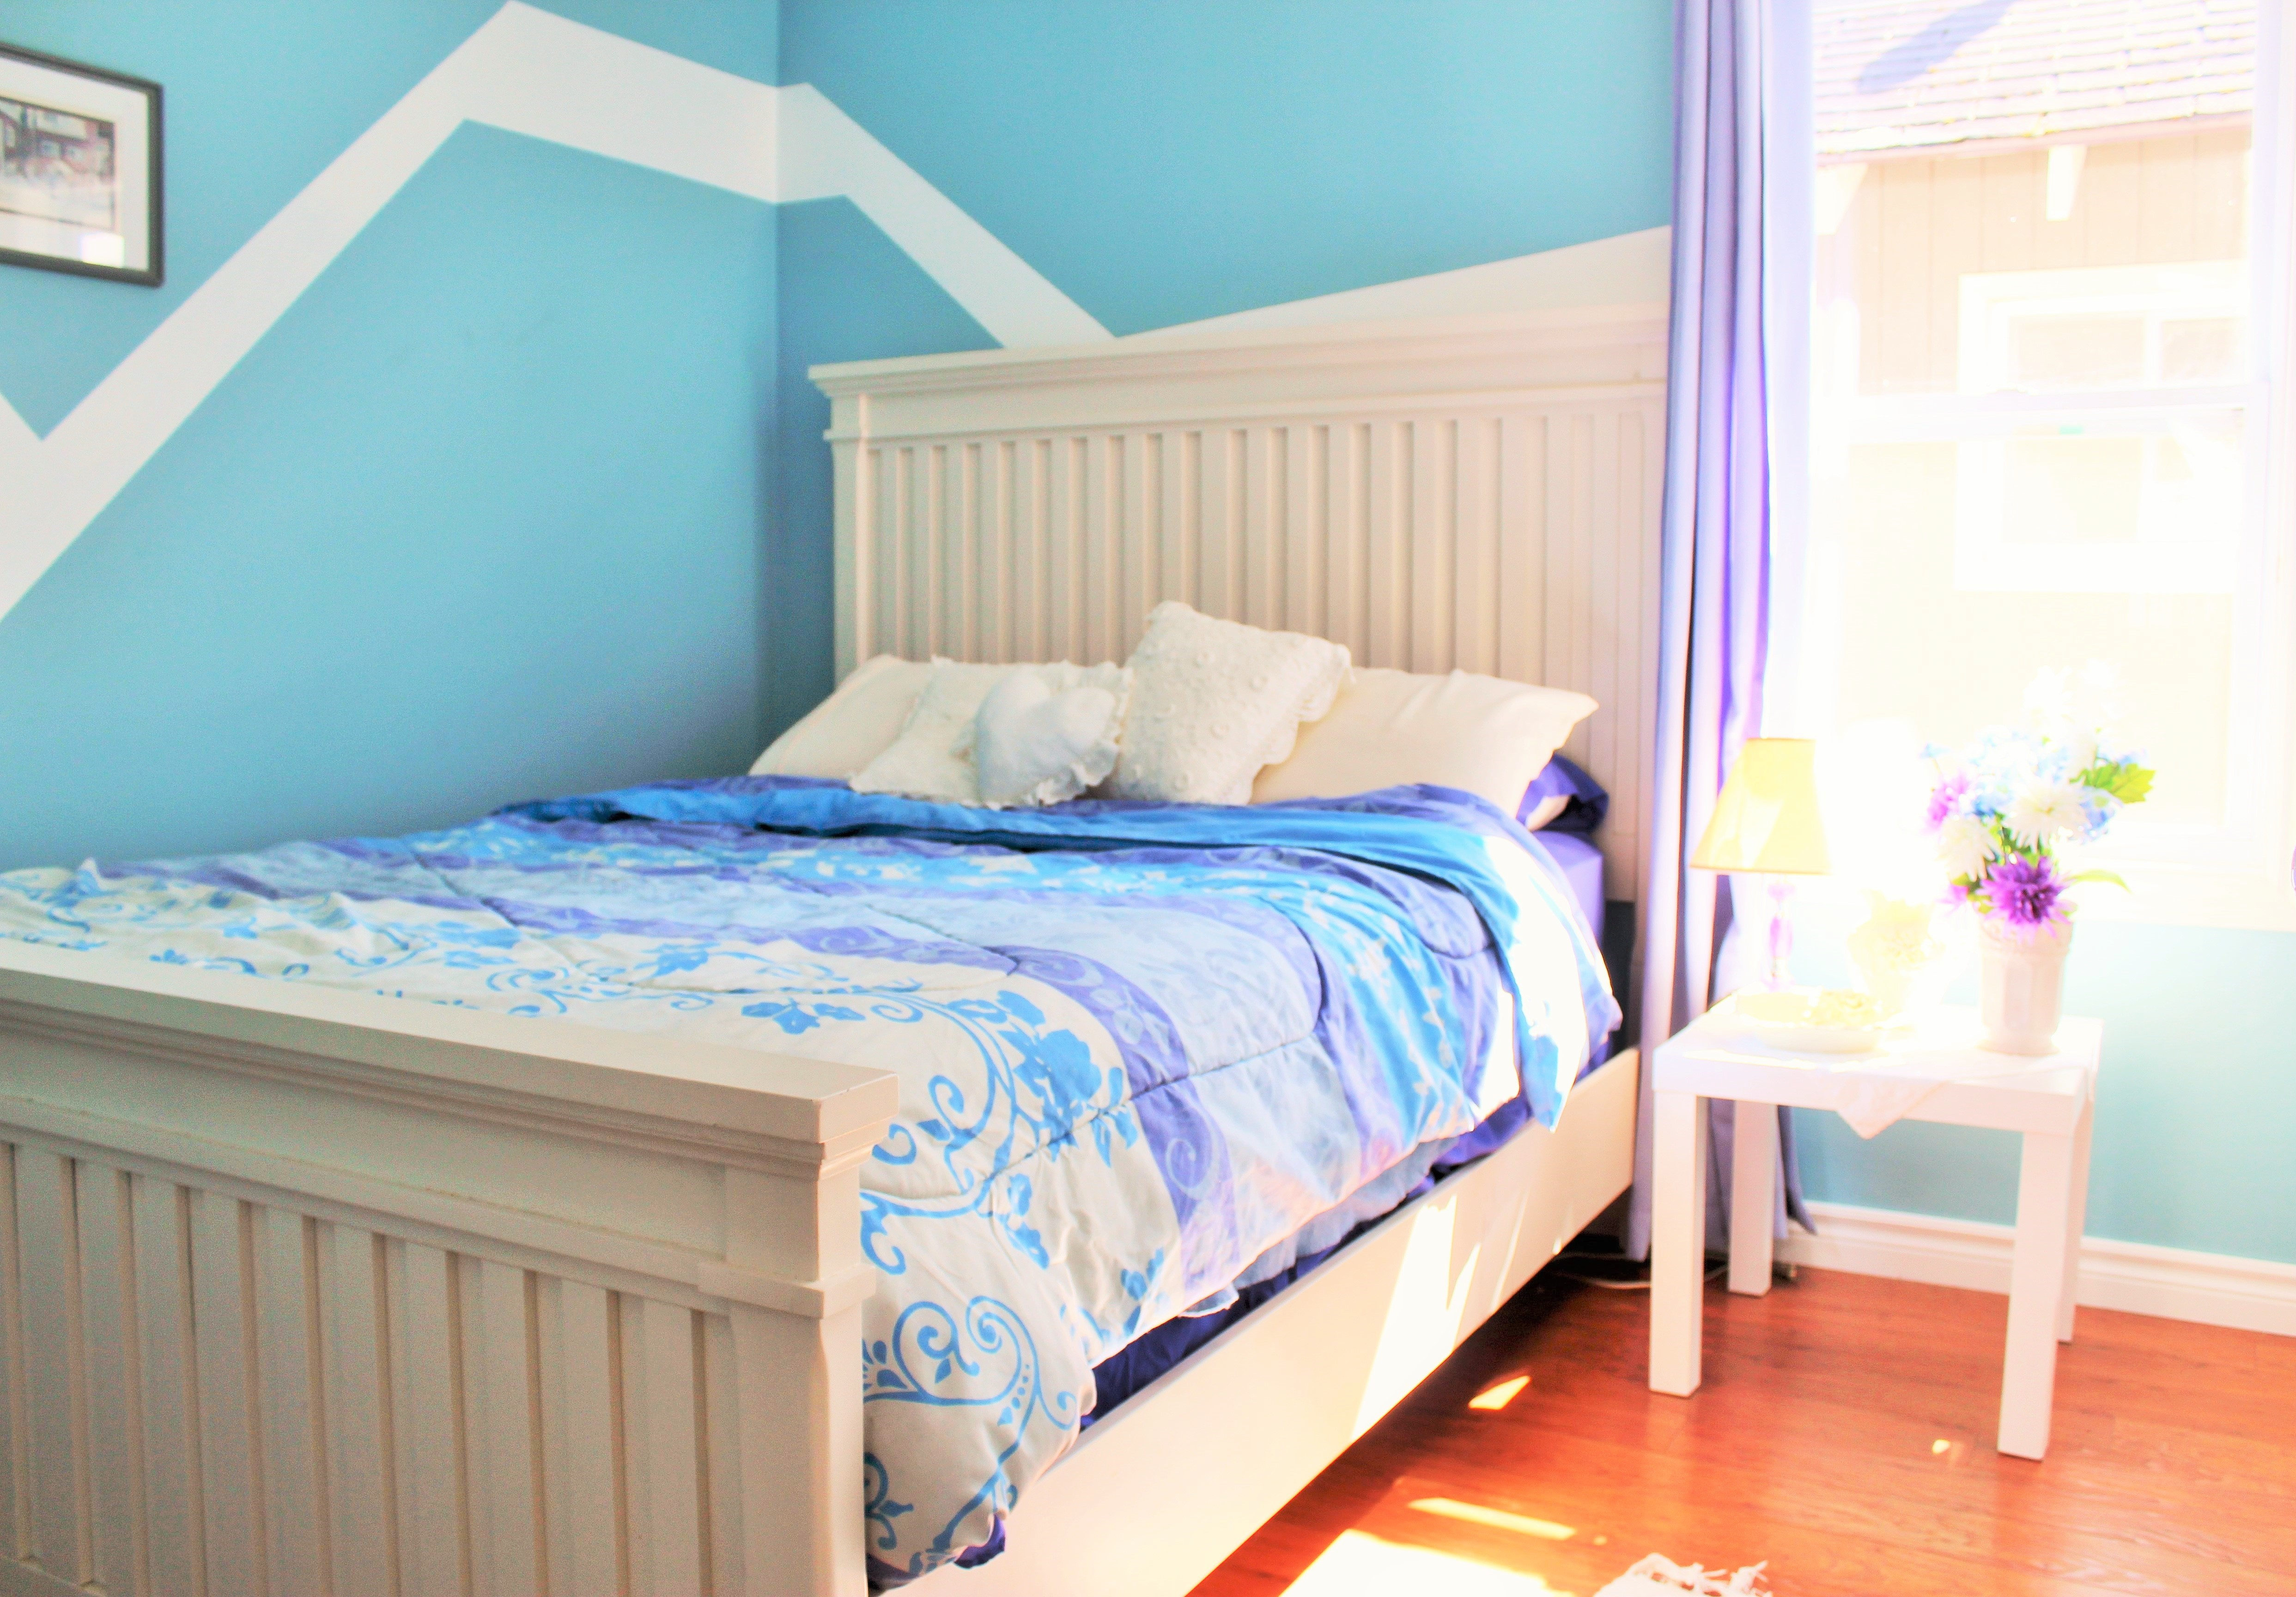 Zen By The Beach Bedroom 1 - Crystal Beach Cottage Rentals